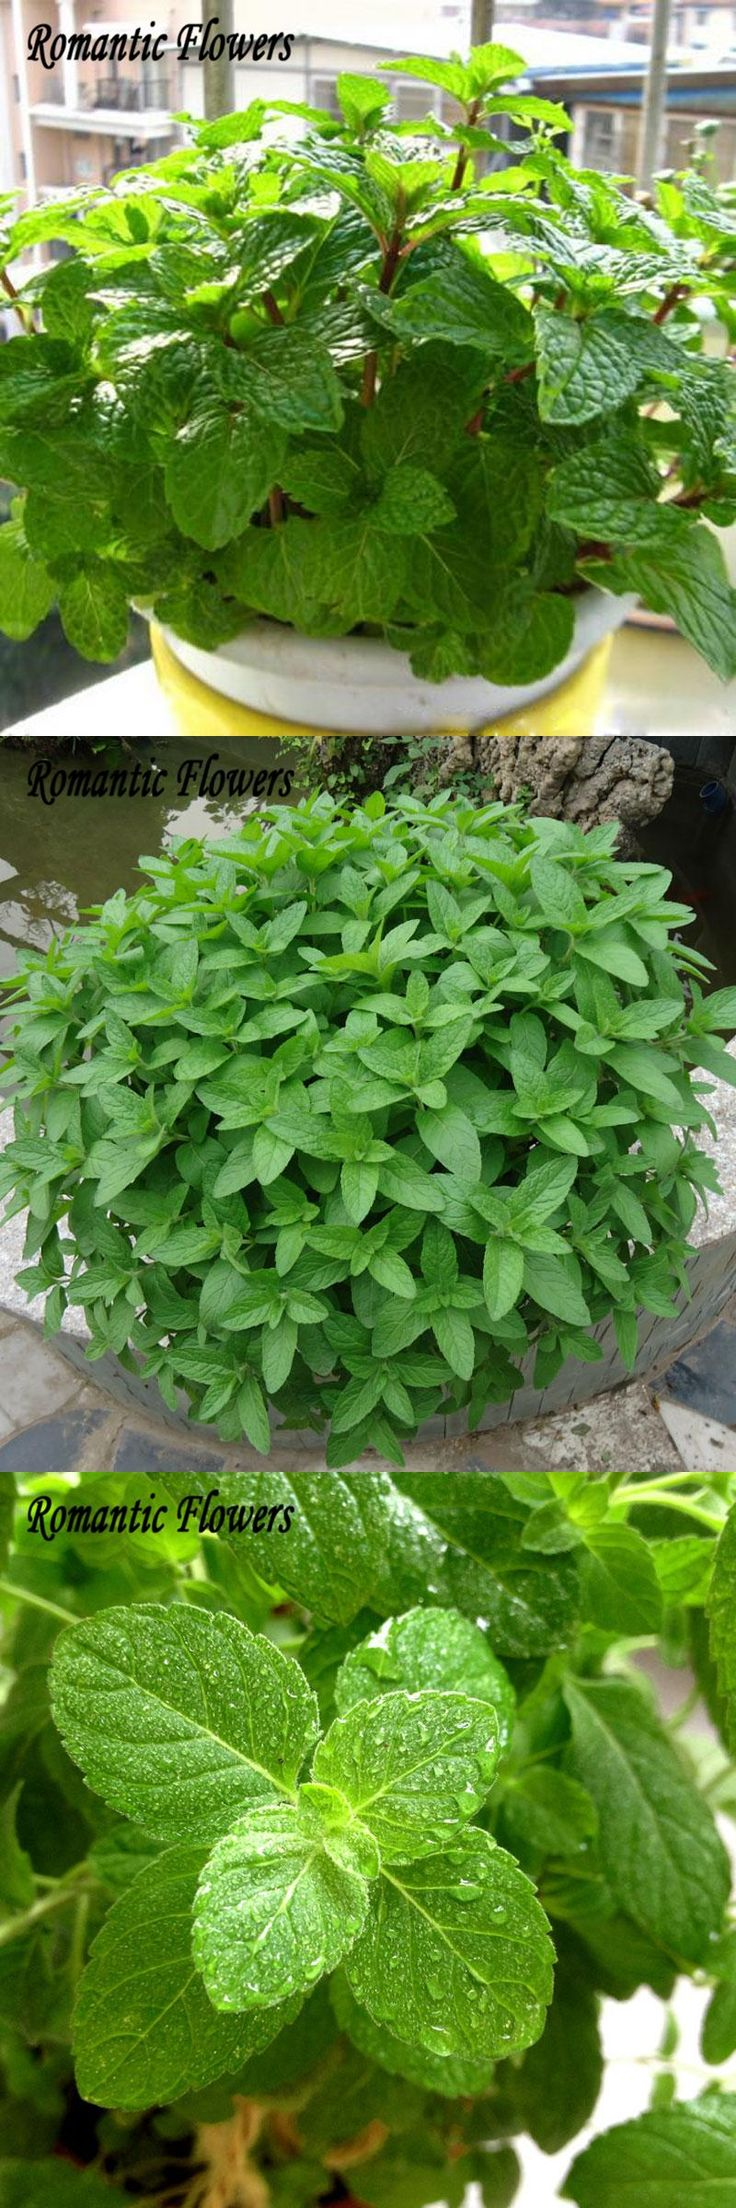 [Visit to Buy] New Delicious 100 Capsules / Bag Mint Seeds Edible Cat Mint Plants Flower Seeds Vegetable Seeds #Advertisement